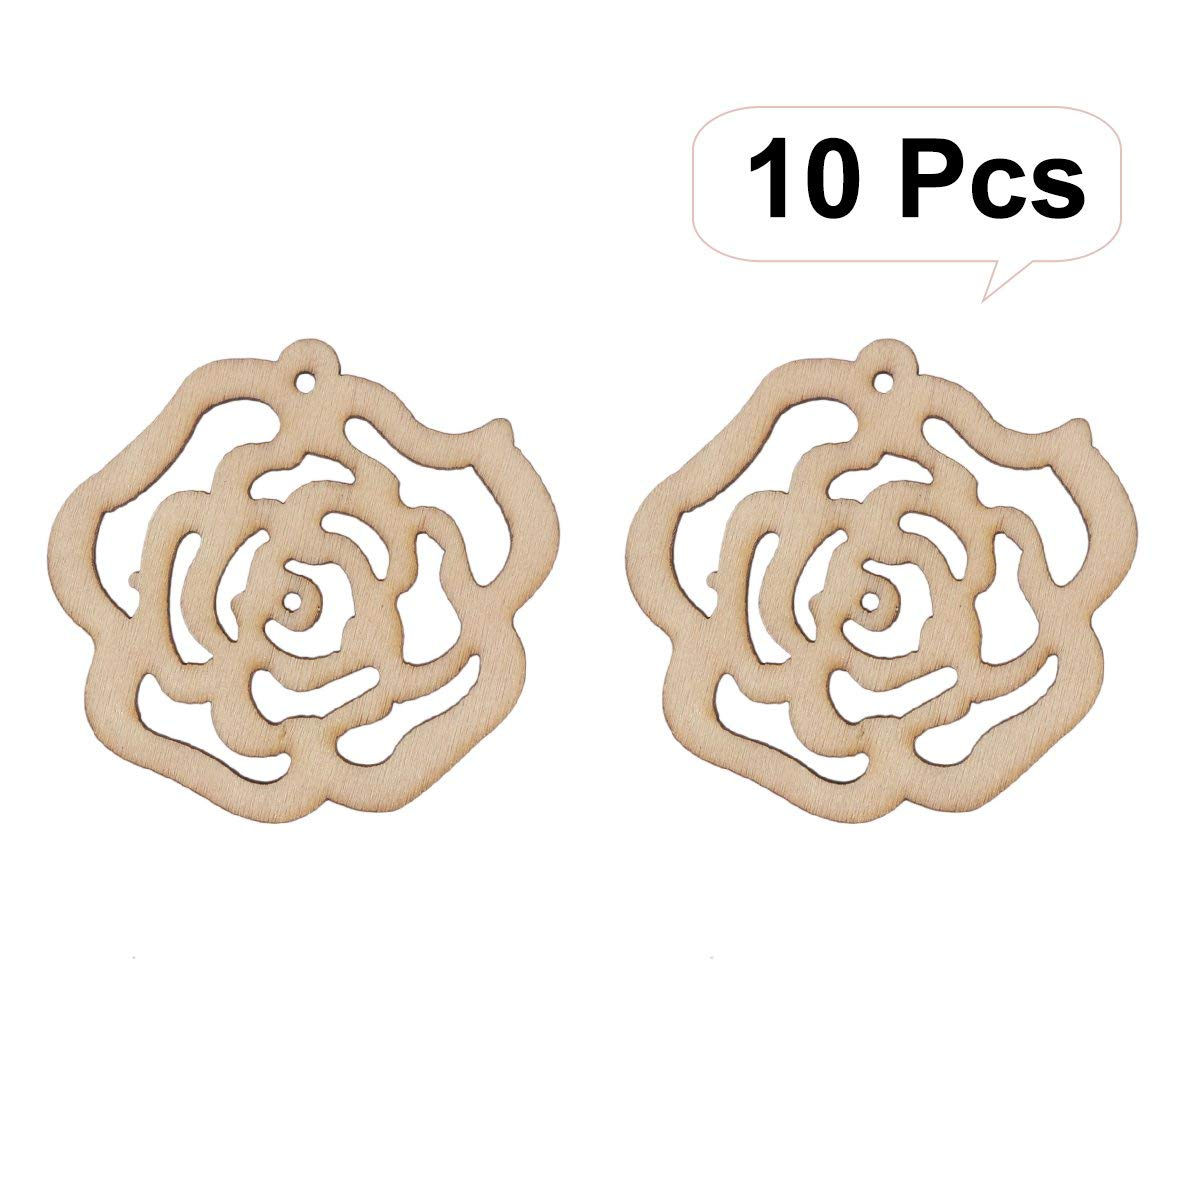 LUOEM 10PCS Hollow Rose Flower Cutout Veneers Slices For Patchwork DIY Crafting Decoration Christmas Wooden Crafts Embellishment Christmas Tree Pendants Hanging Ornaments Wood Tag